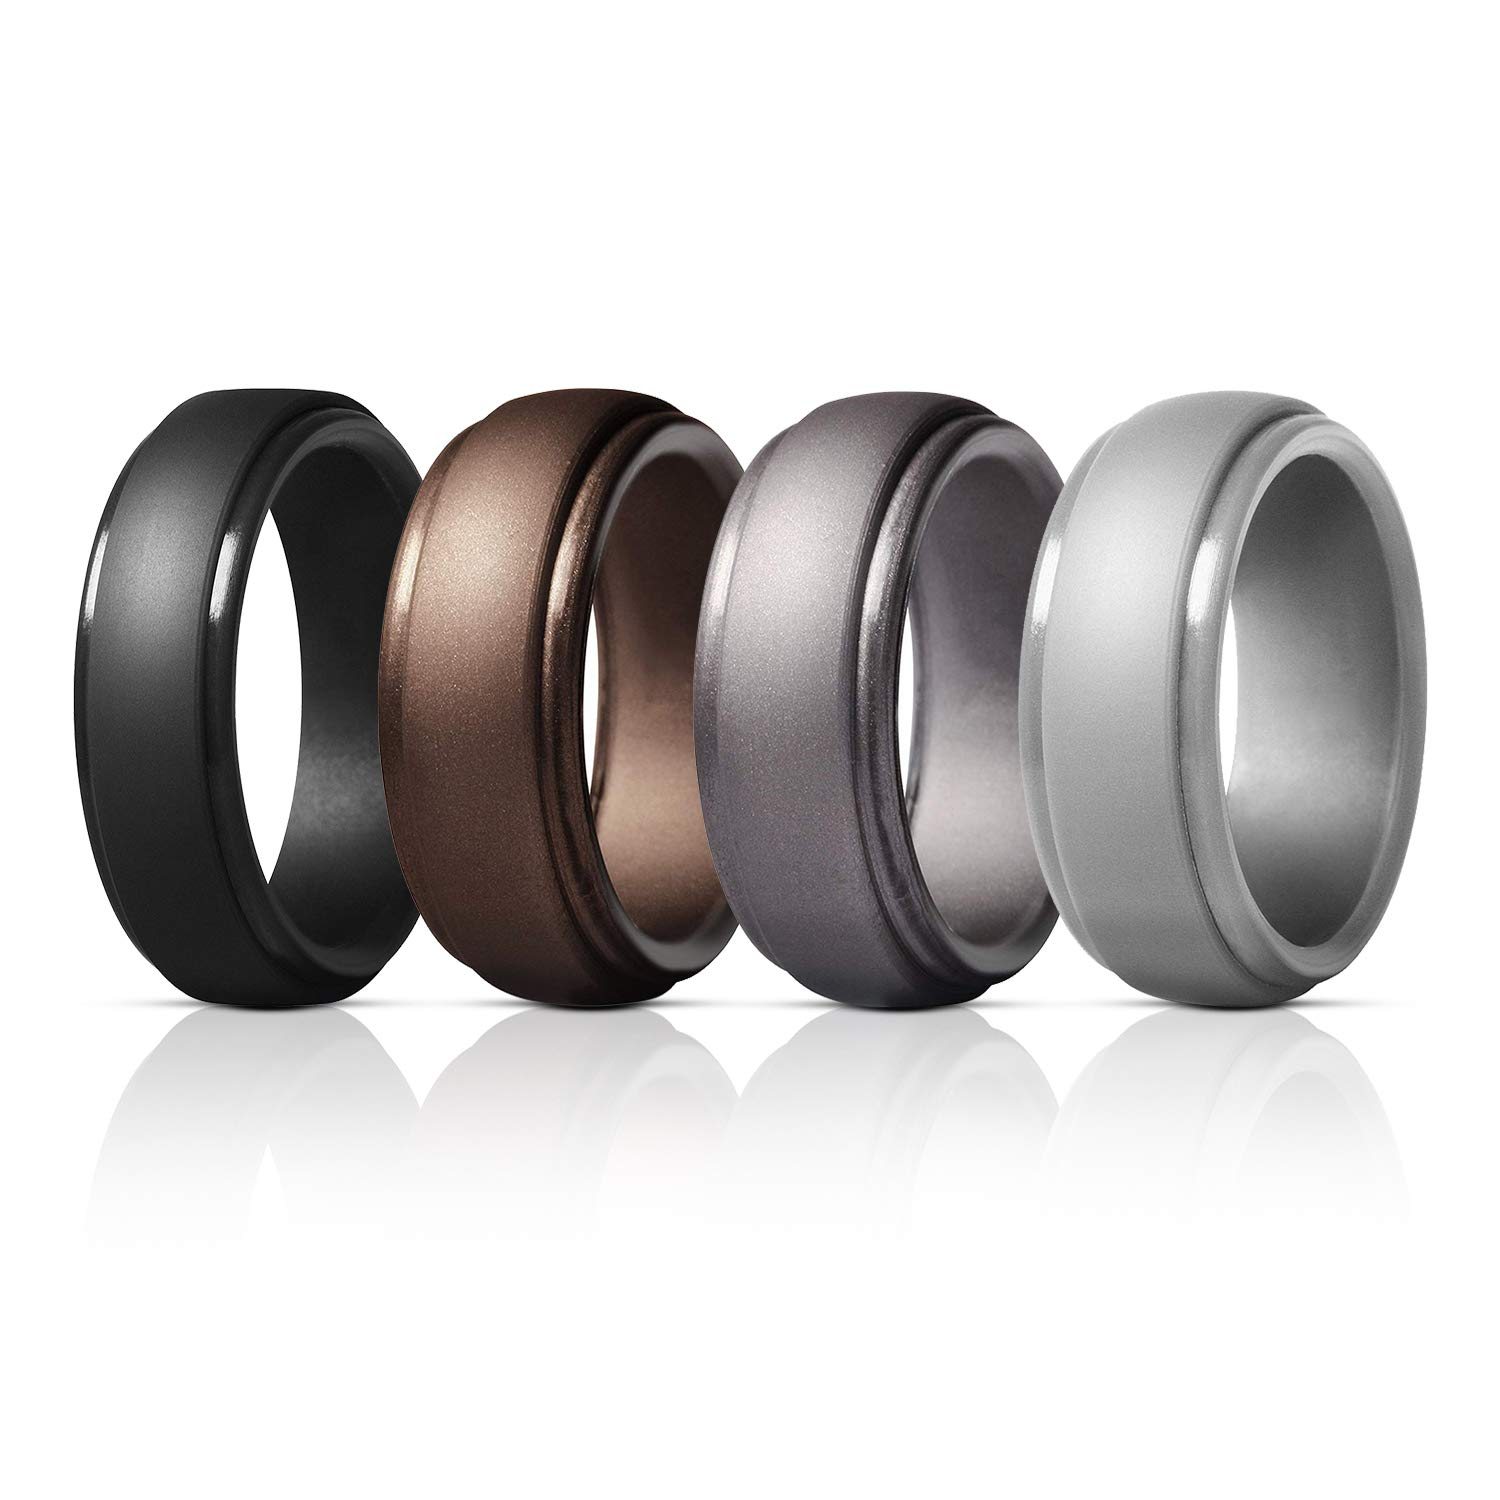 for Crossfit Workout Step Edge Sleek Design -Size 7 8 9 10 11 12 13 14 Elimoons Silicone Wedding Ring for Men 8 Rings//4 Rings /&Singles Silicone Rubber Wedding Bands